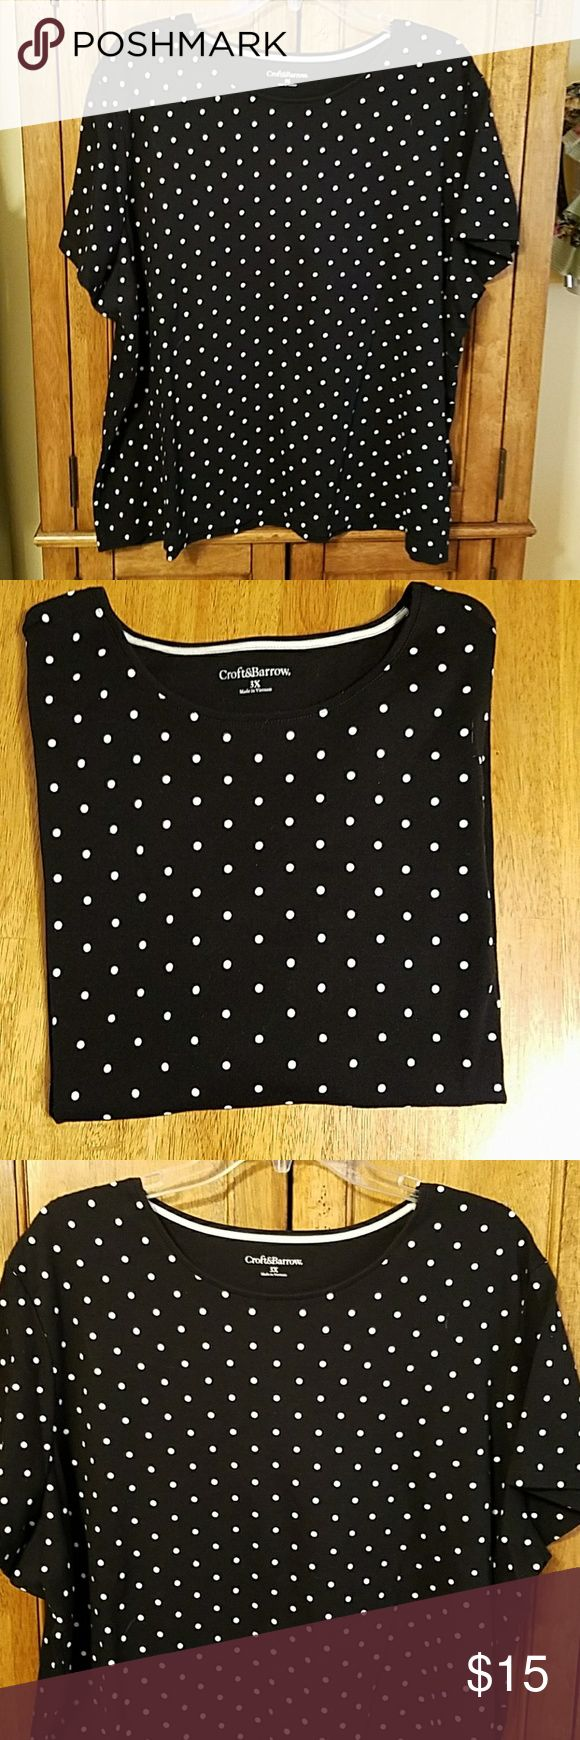 BLACK AND WHITE POLKA DOT SHORT SLEEVE TEE Beautiful black and white polka dot short sleeve tee by Croft & Barrow, excellent condition only worn 1 or 2 times, great for spring and summer, material 100% cotton, size 3X croft & barrow Tops Tees - Short Sleeve